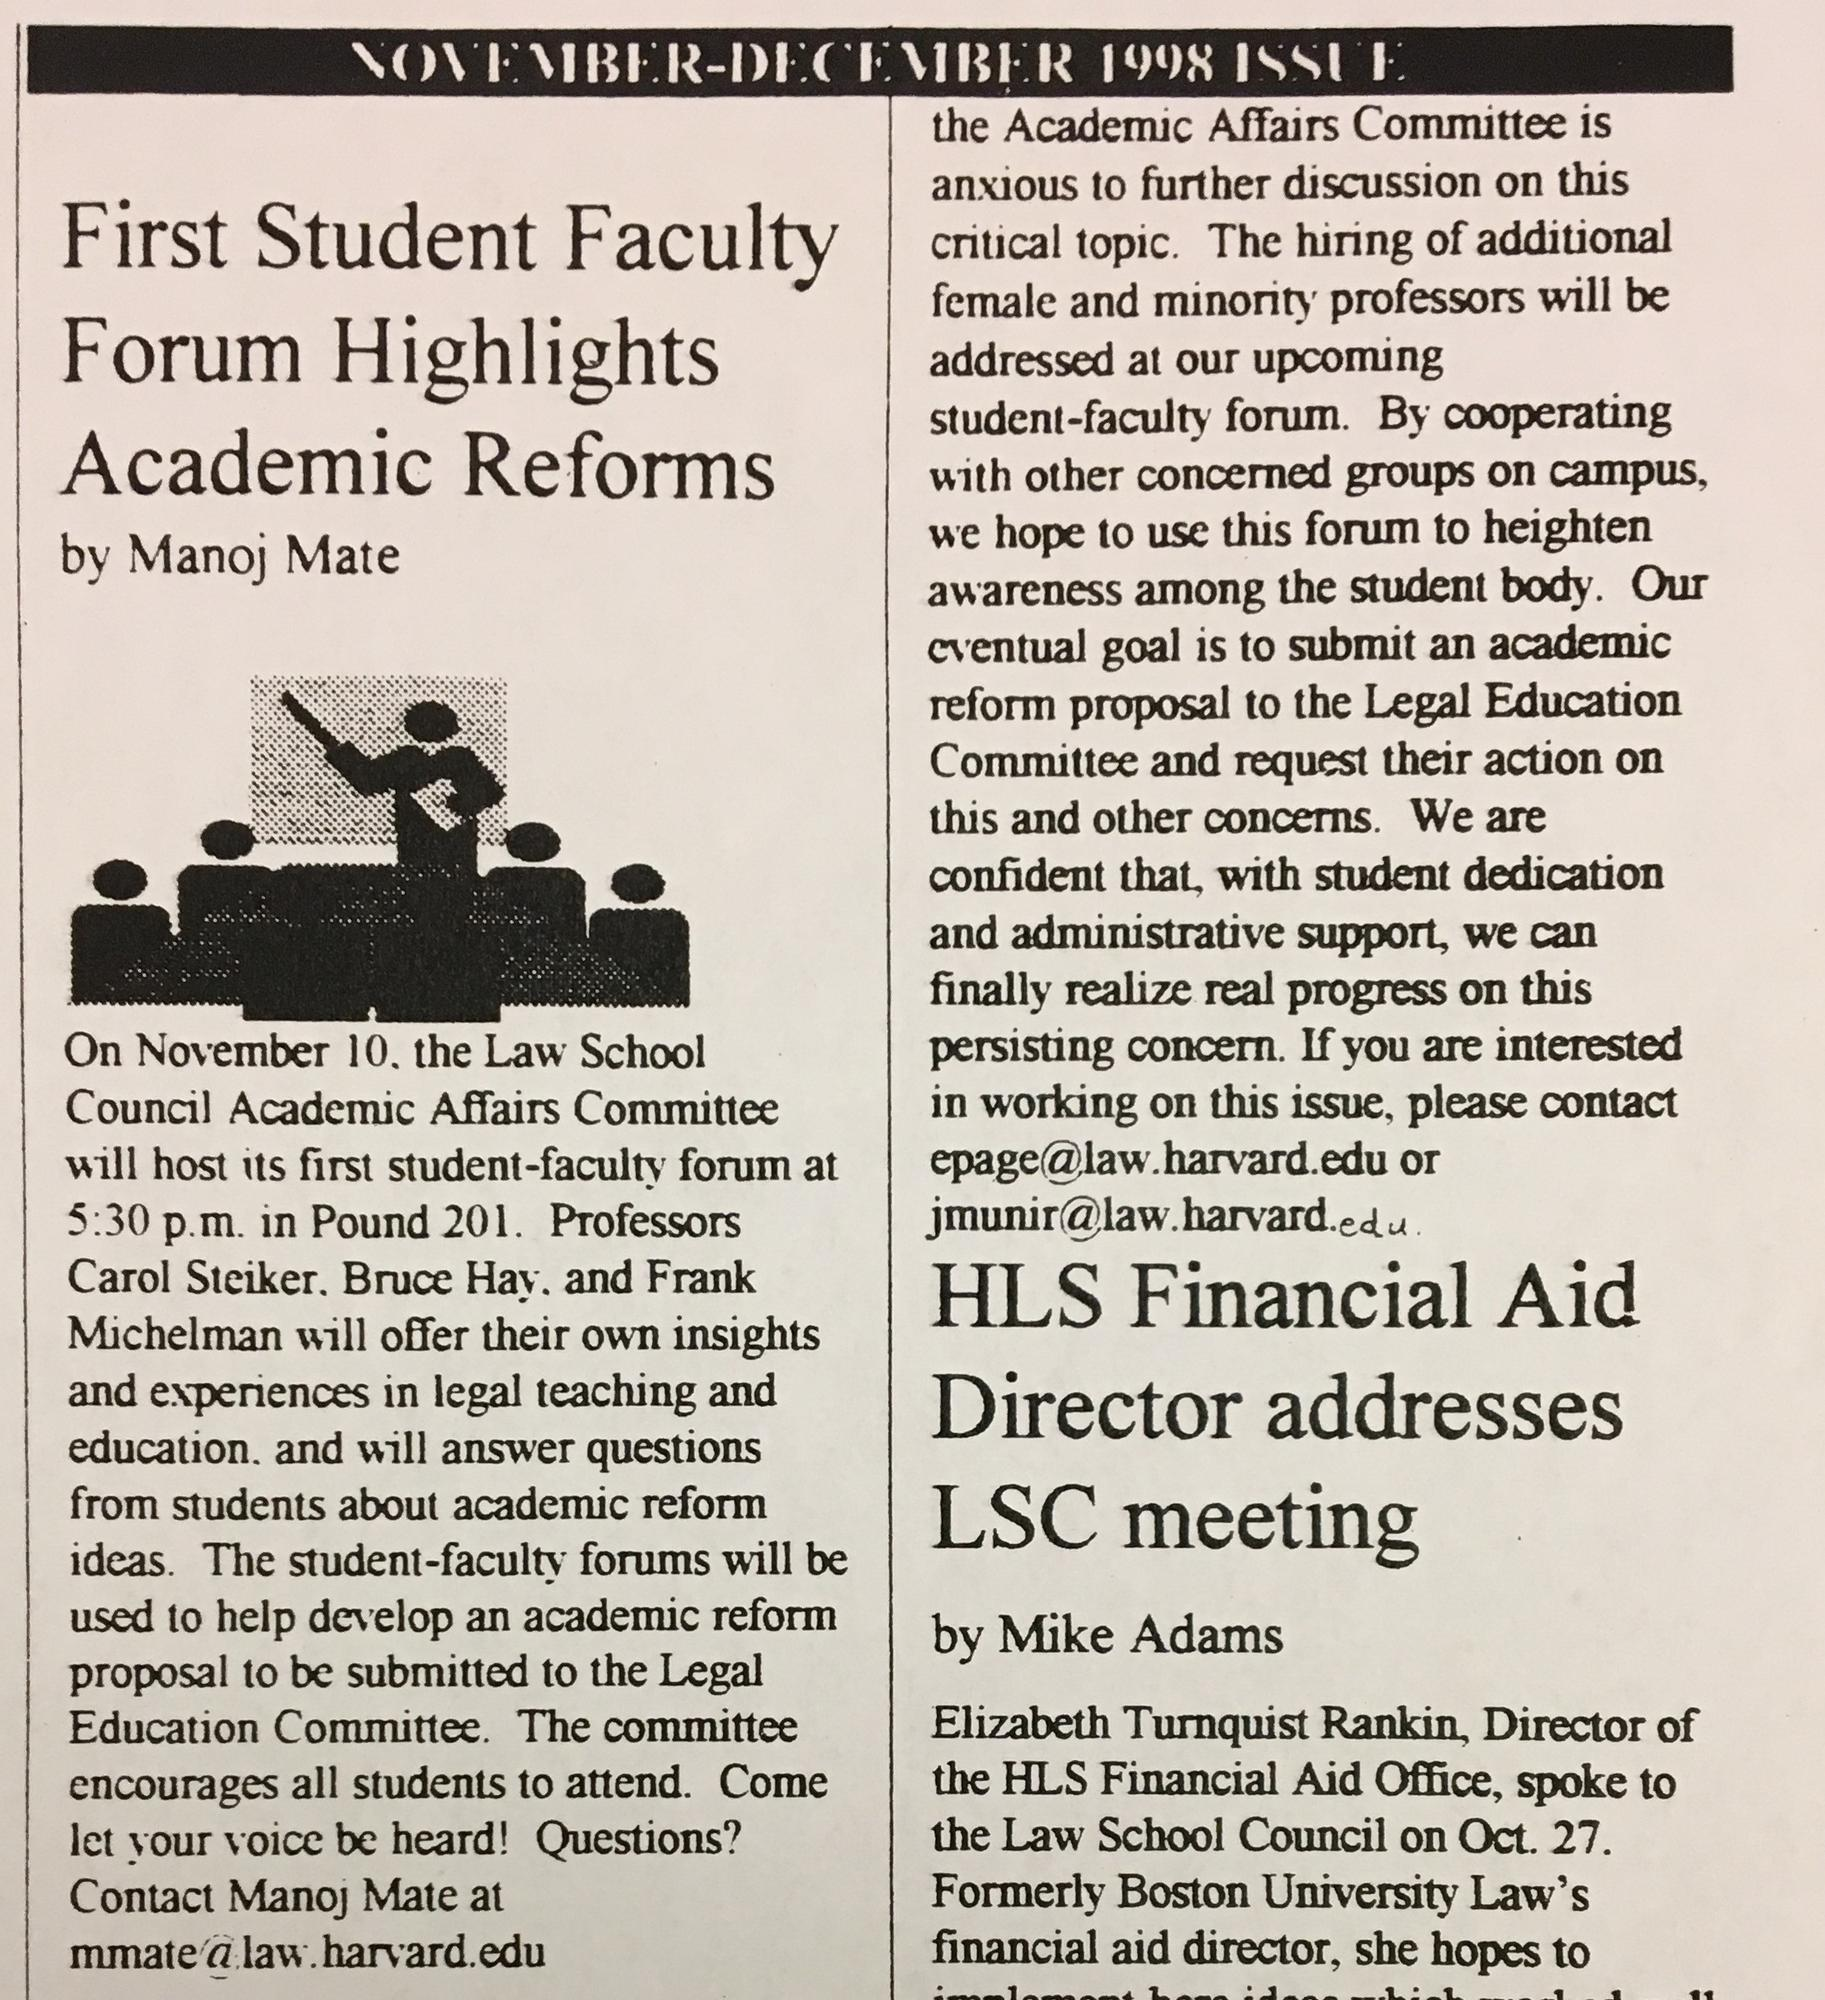 Harvard Law School Academic Report newsletter